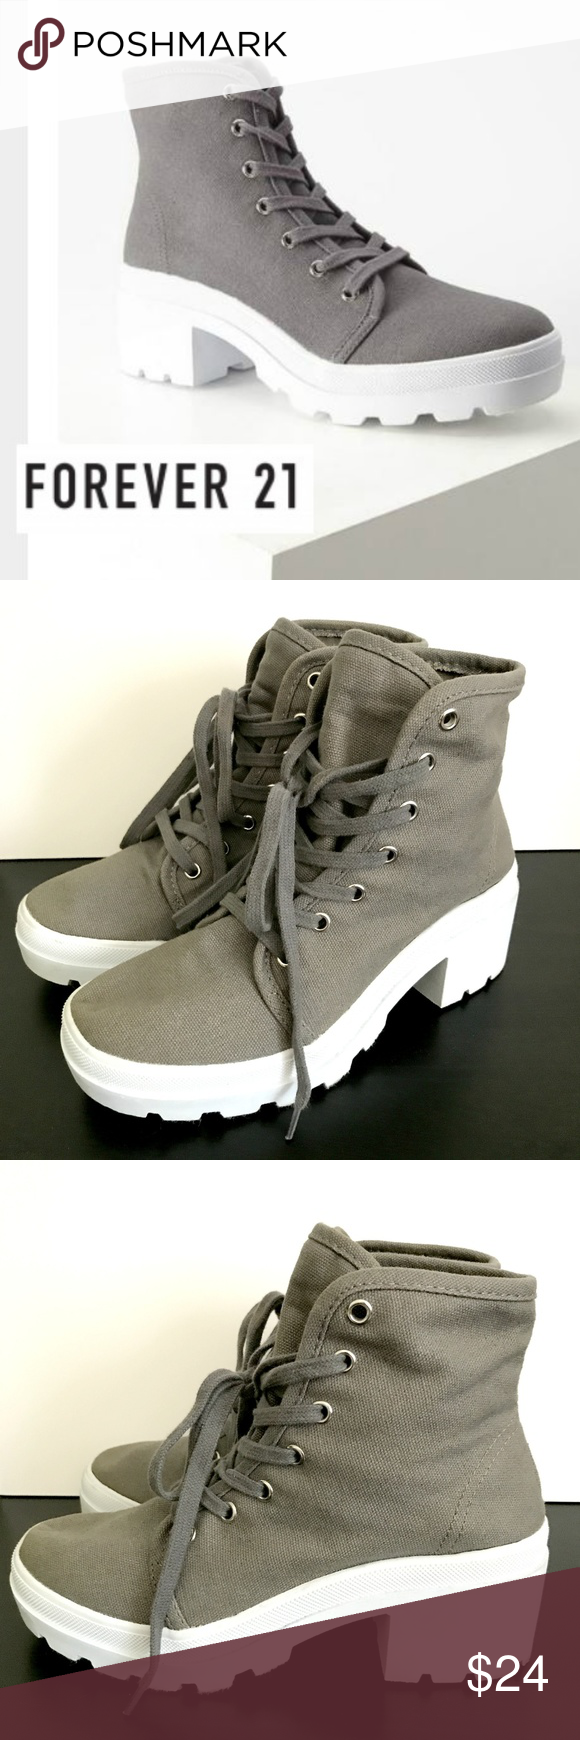 Canvas Lug Platform Boots Gray Size 7 Forever 21 Canvas Lug Platform Boots  Gray Size 7 7e12e0dba2